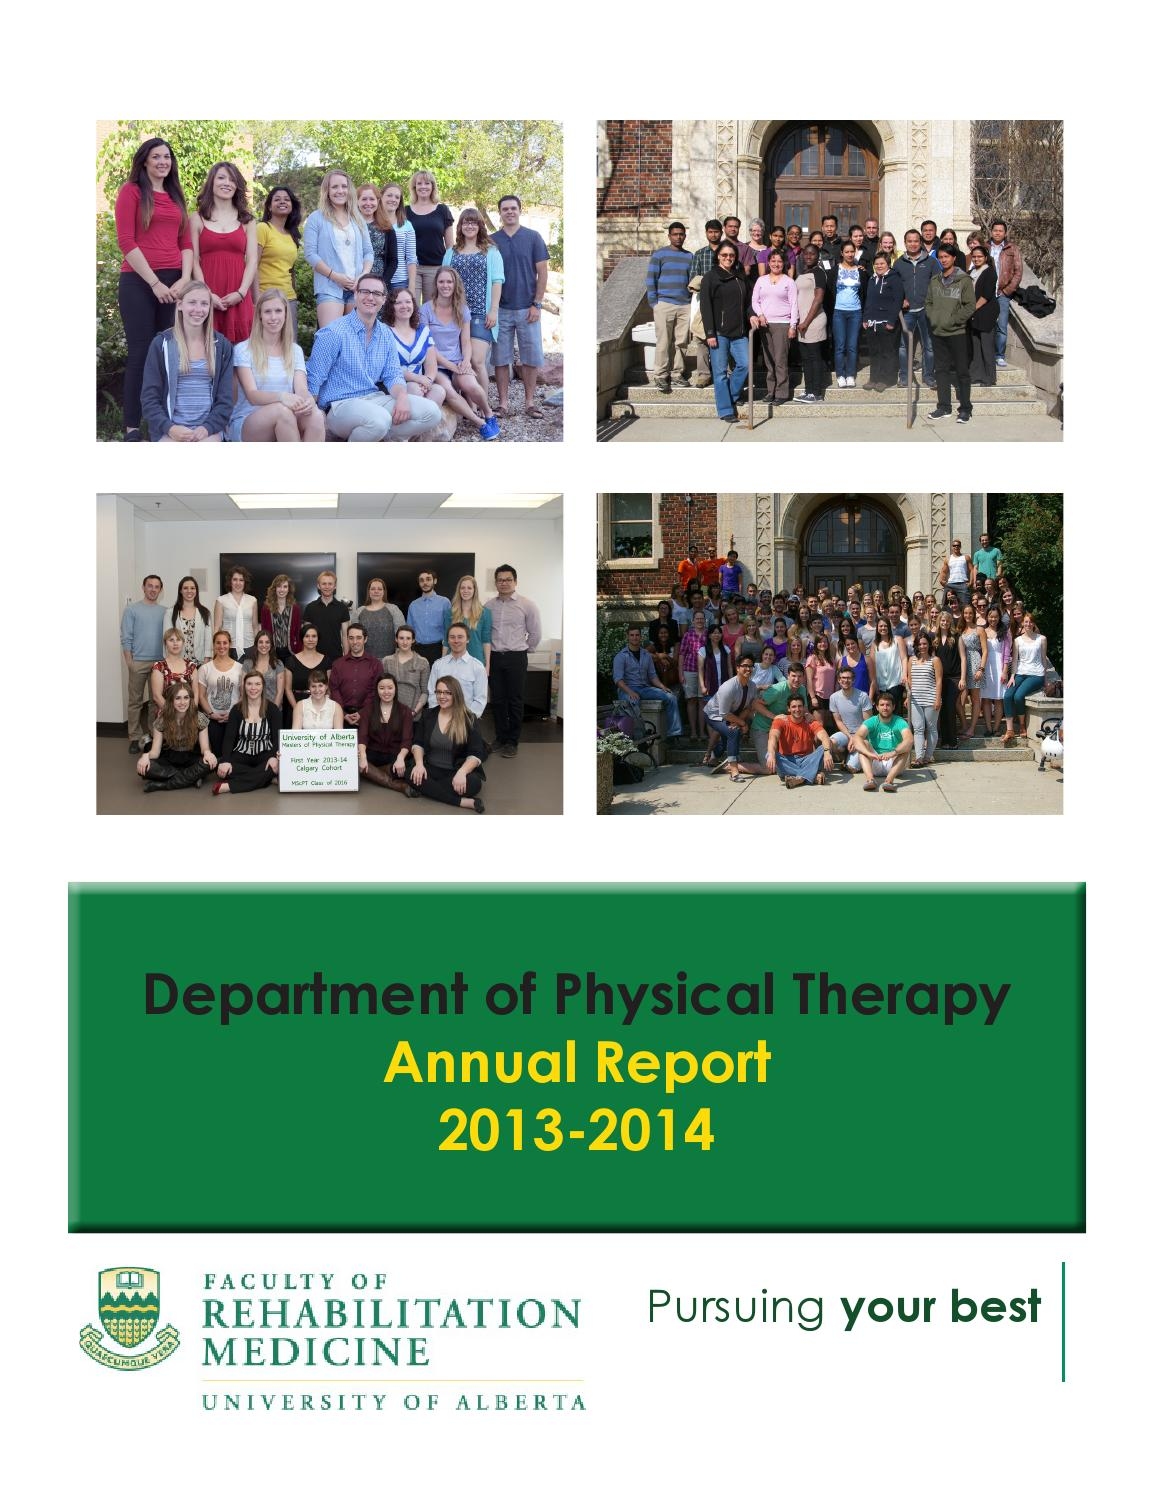 Department Of Physical Therapy Annual Report 20013 14 By